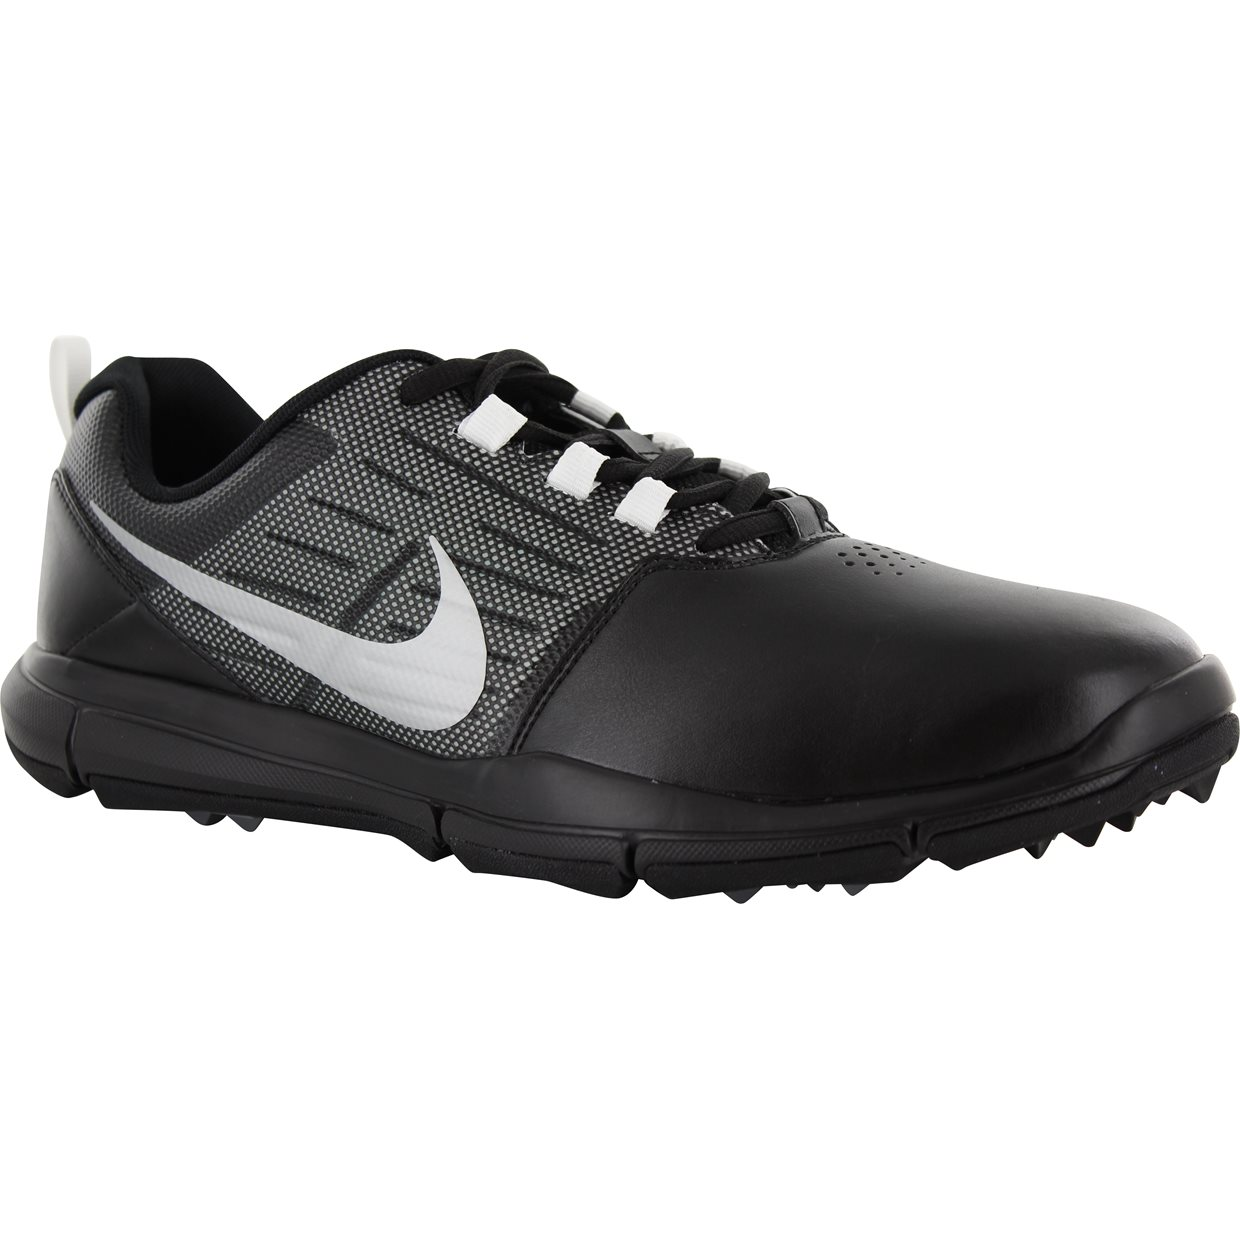 Nike Explorer SL Spikeless Golf Shoes - Black Medium Width